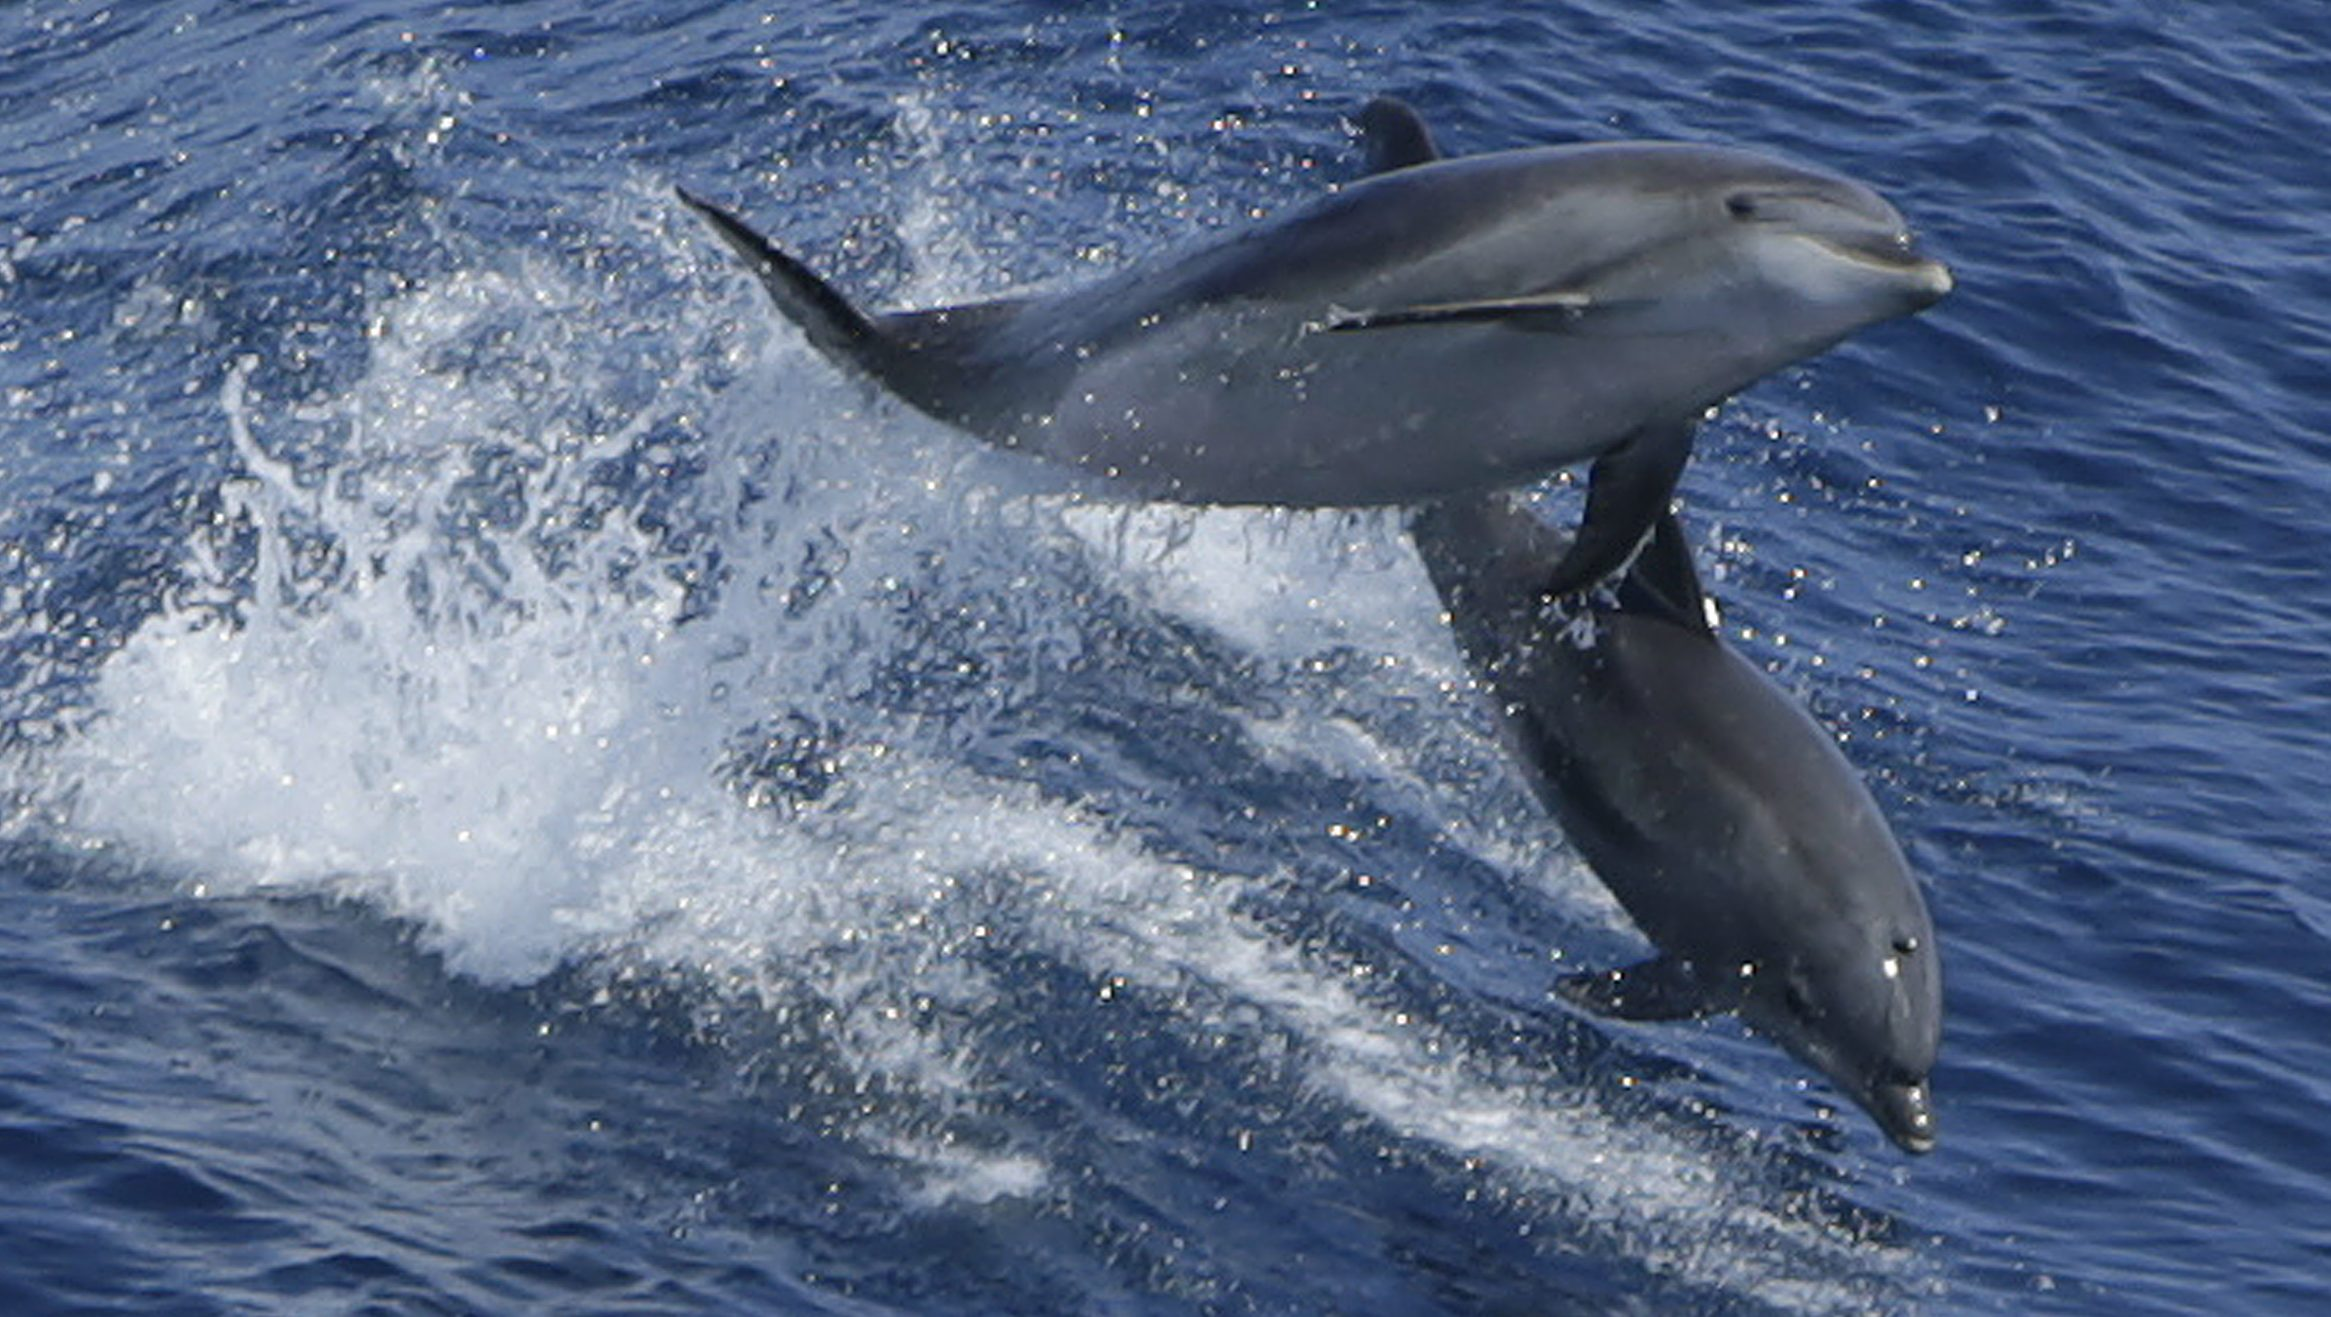 A pair of dolphins leap in the wake of Royal Caribbean cruise line ship 'Grandeur of the Seas' July 18, 2013 in the Atlantic Ocean between Bermuda and the United States main land.